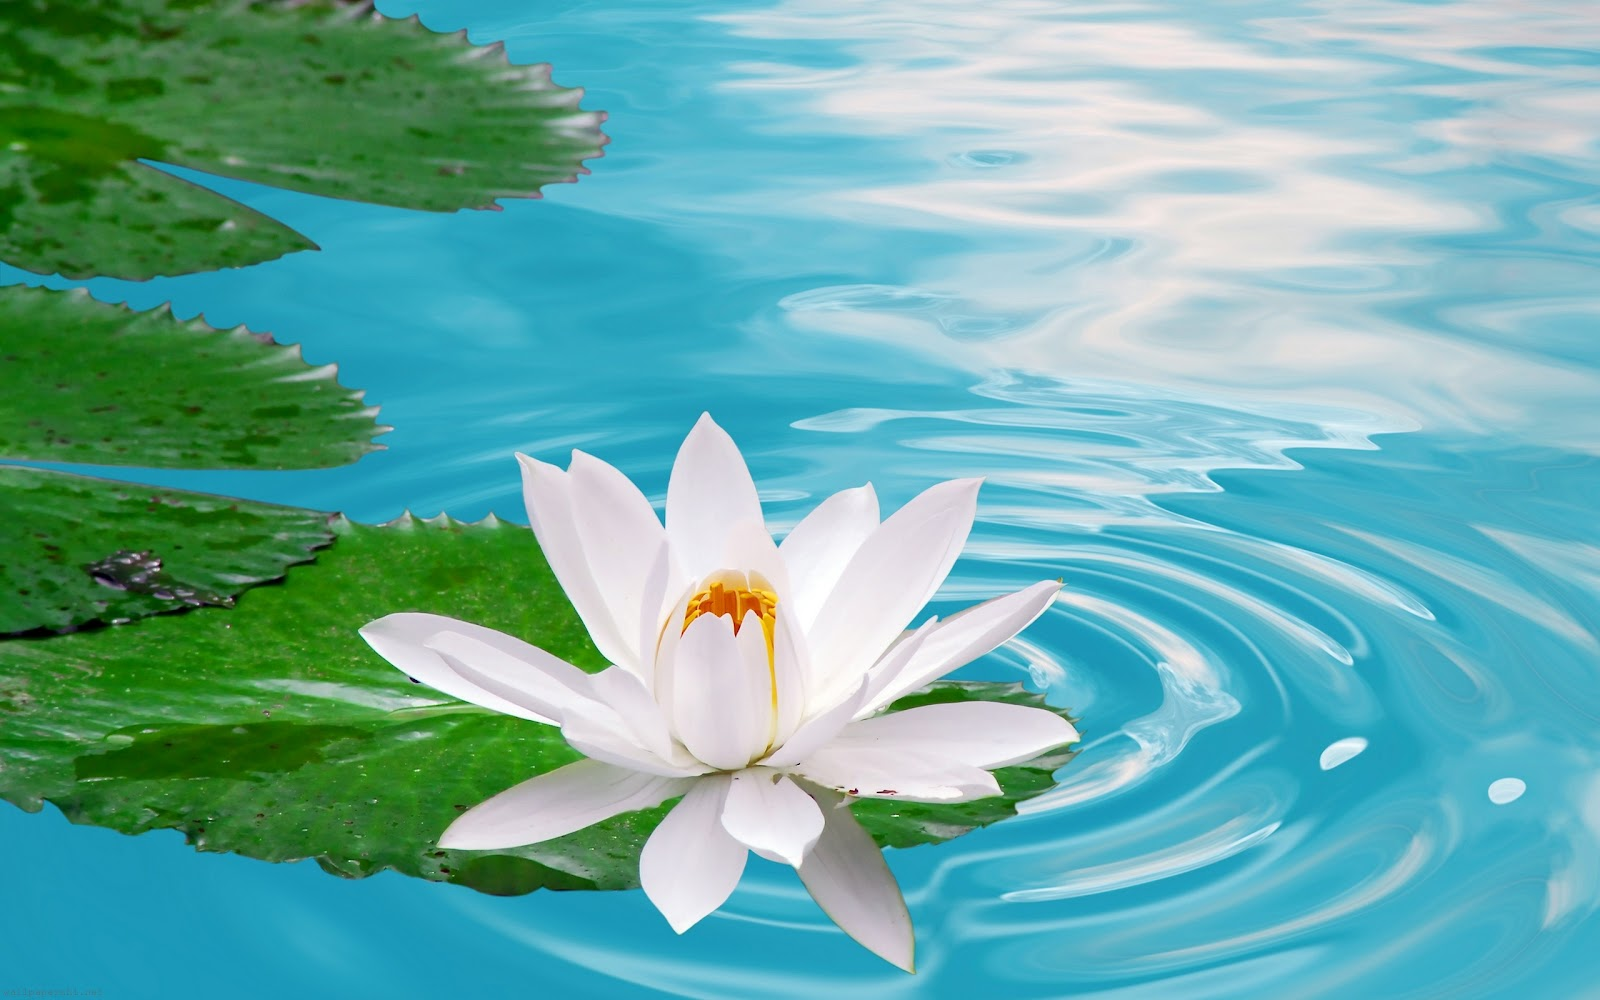 Funny Wallpapers: Beauty nature flower, beautiful nature ...  Images Of Nature And Flowers